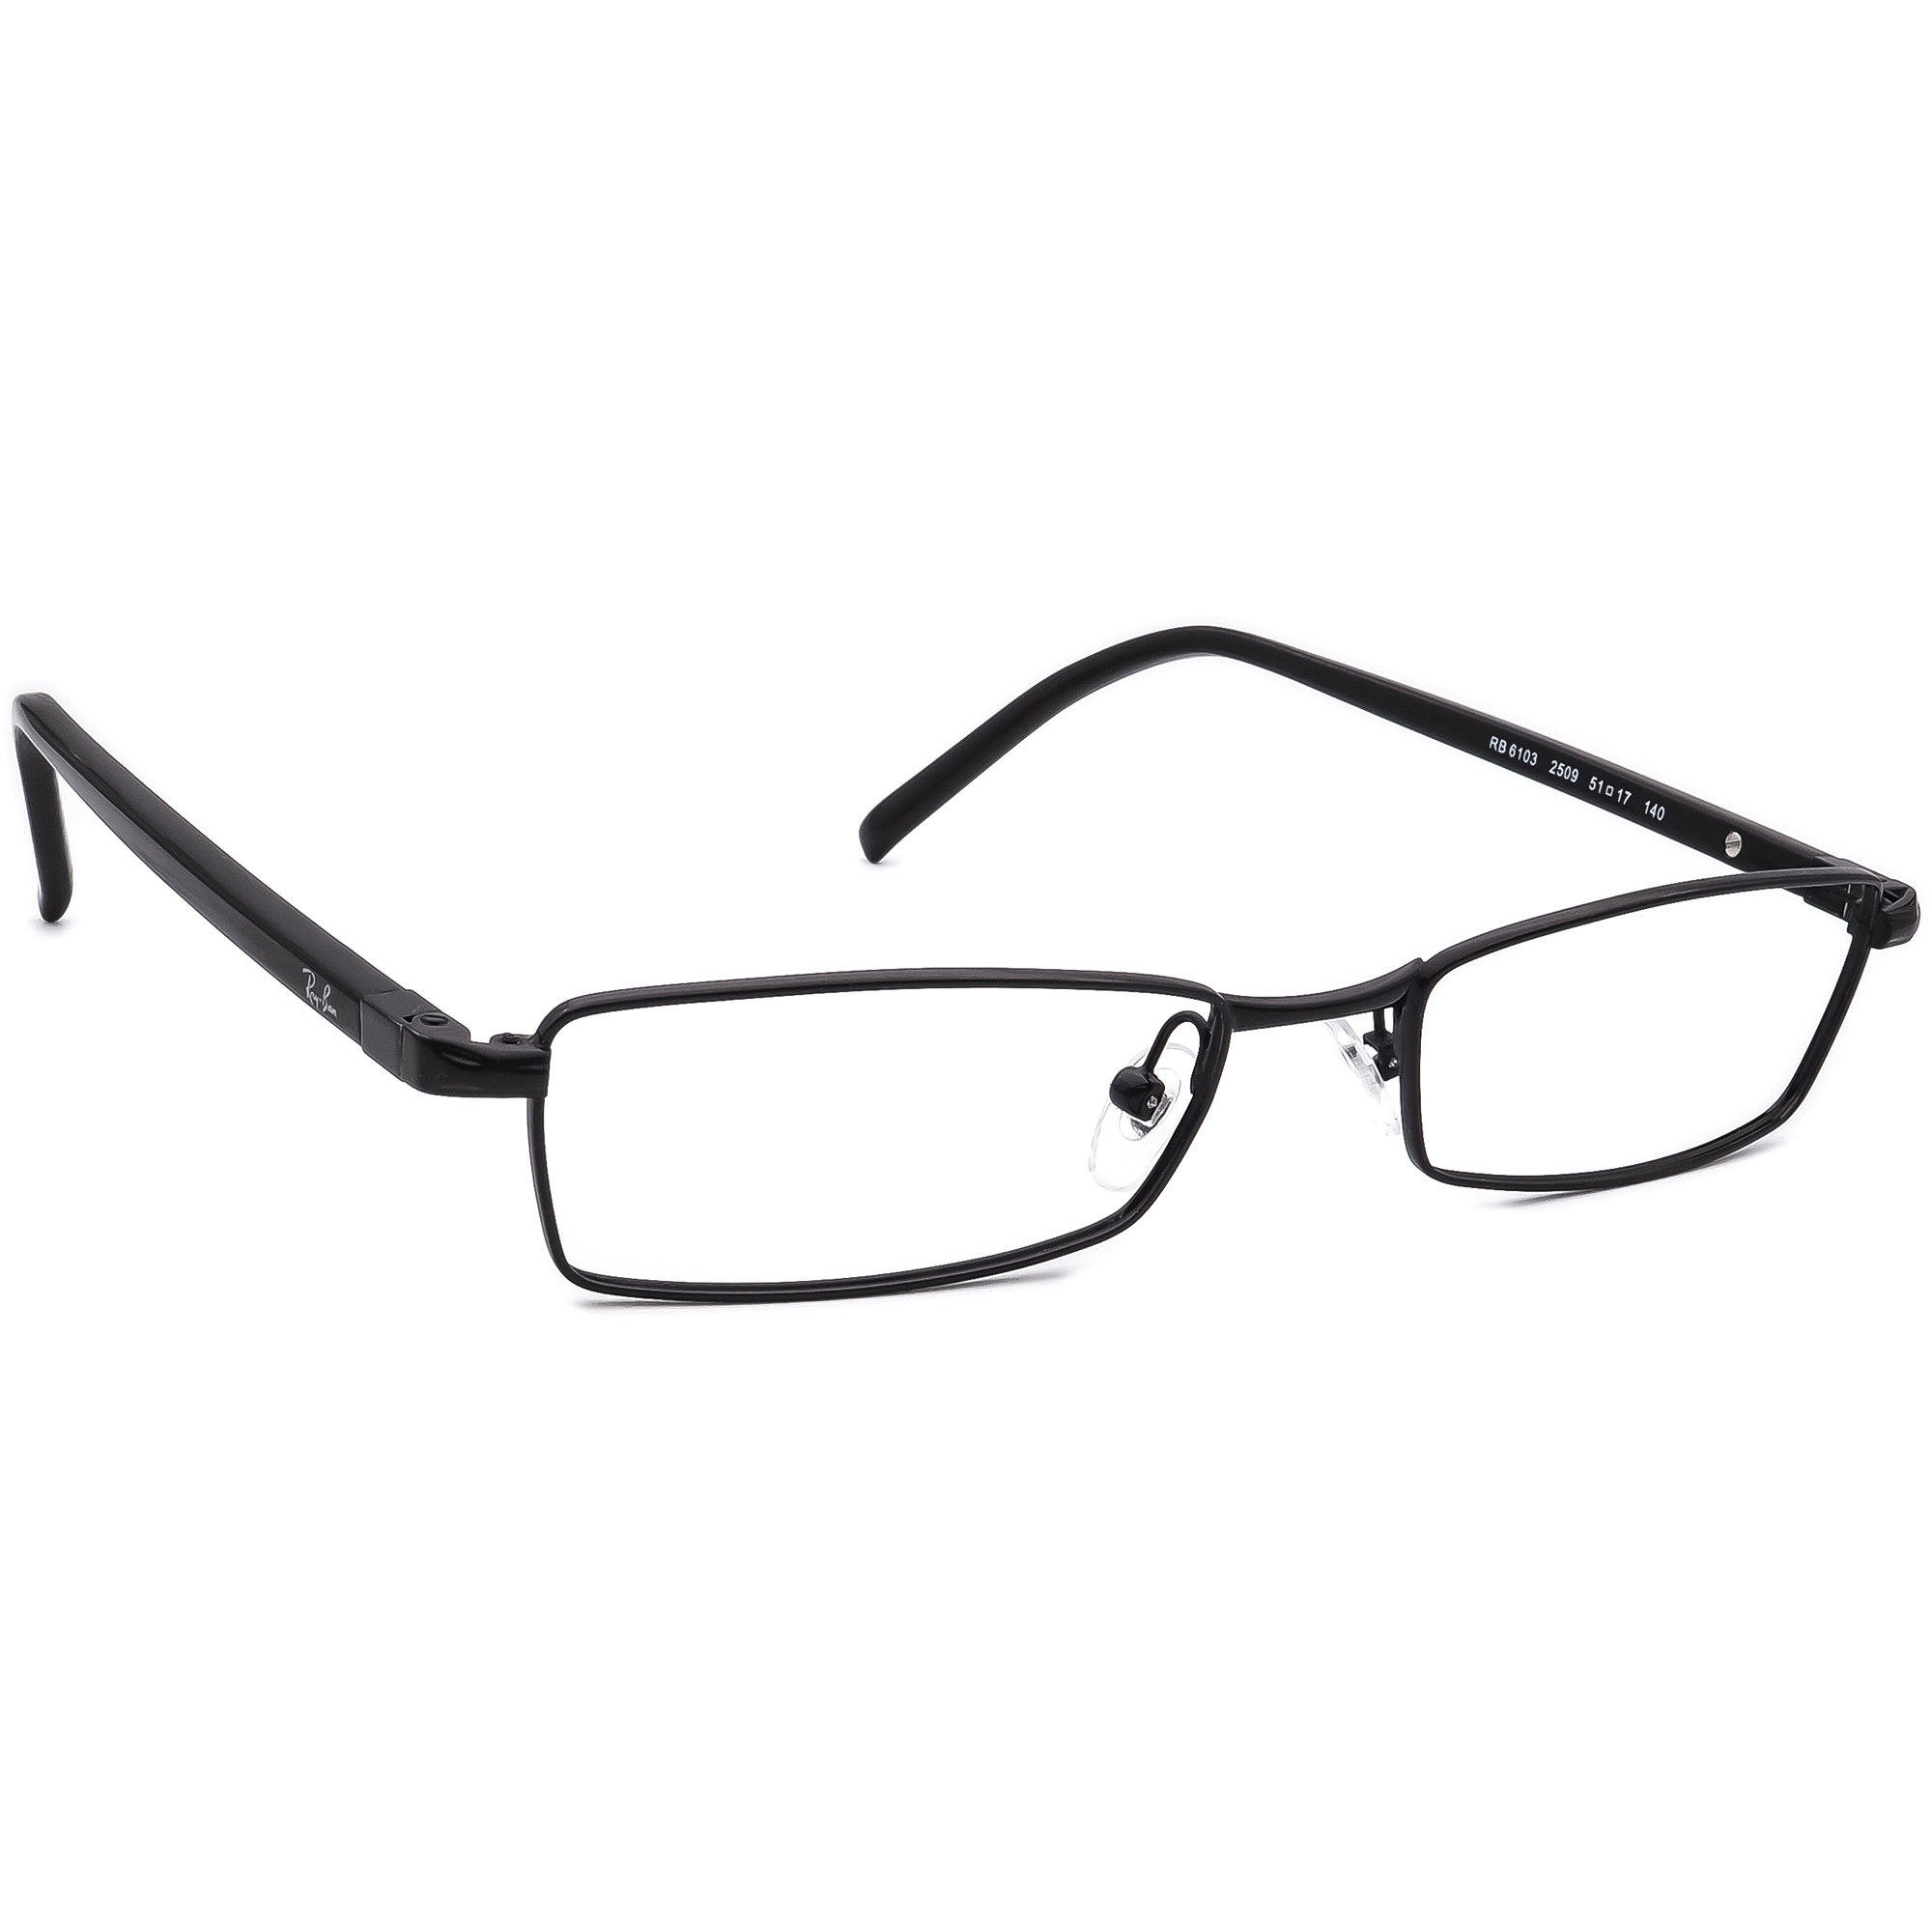 Ray Ban Eyeglasses RB 6103 2509 Black Rectangular Frame 51[]17 140